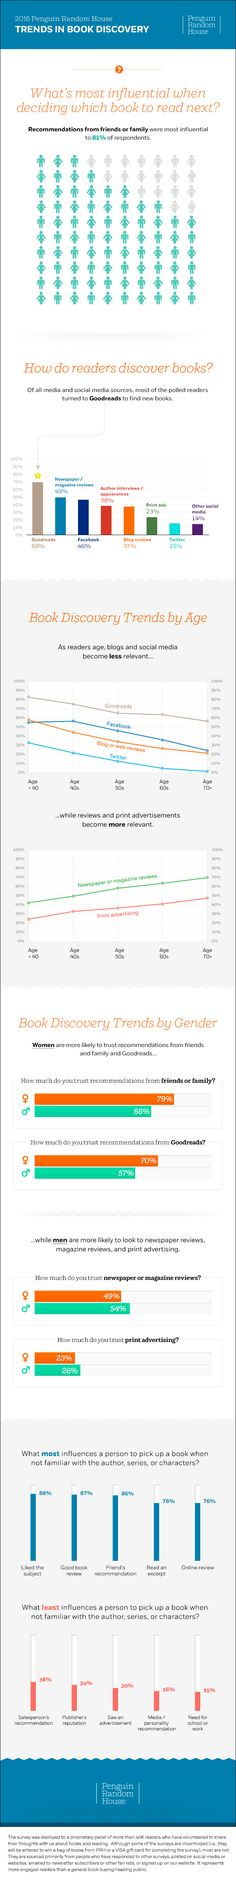 Trends in book discovery, according to The Penguin Random House. #book #creativeundistries #culture #publishing